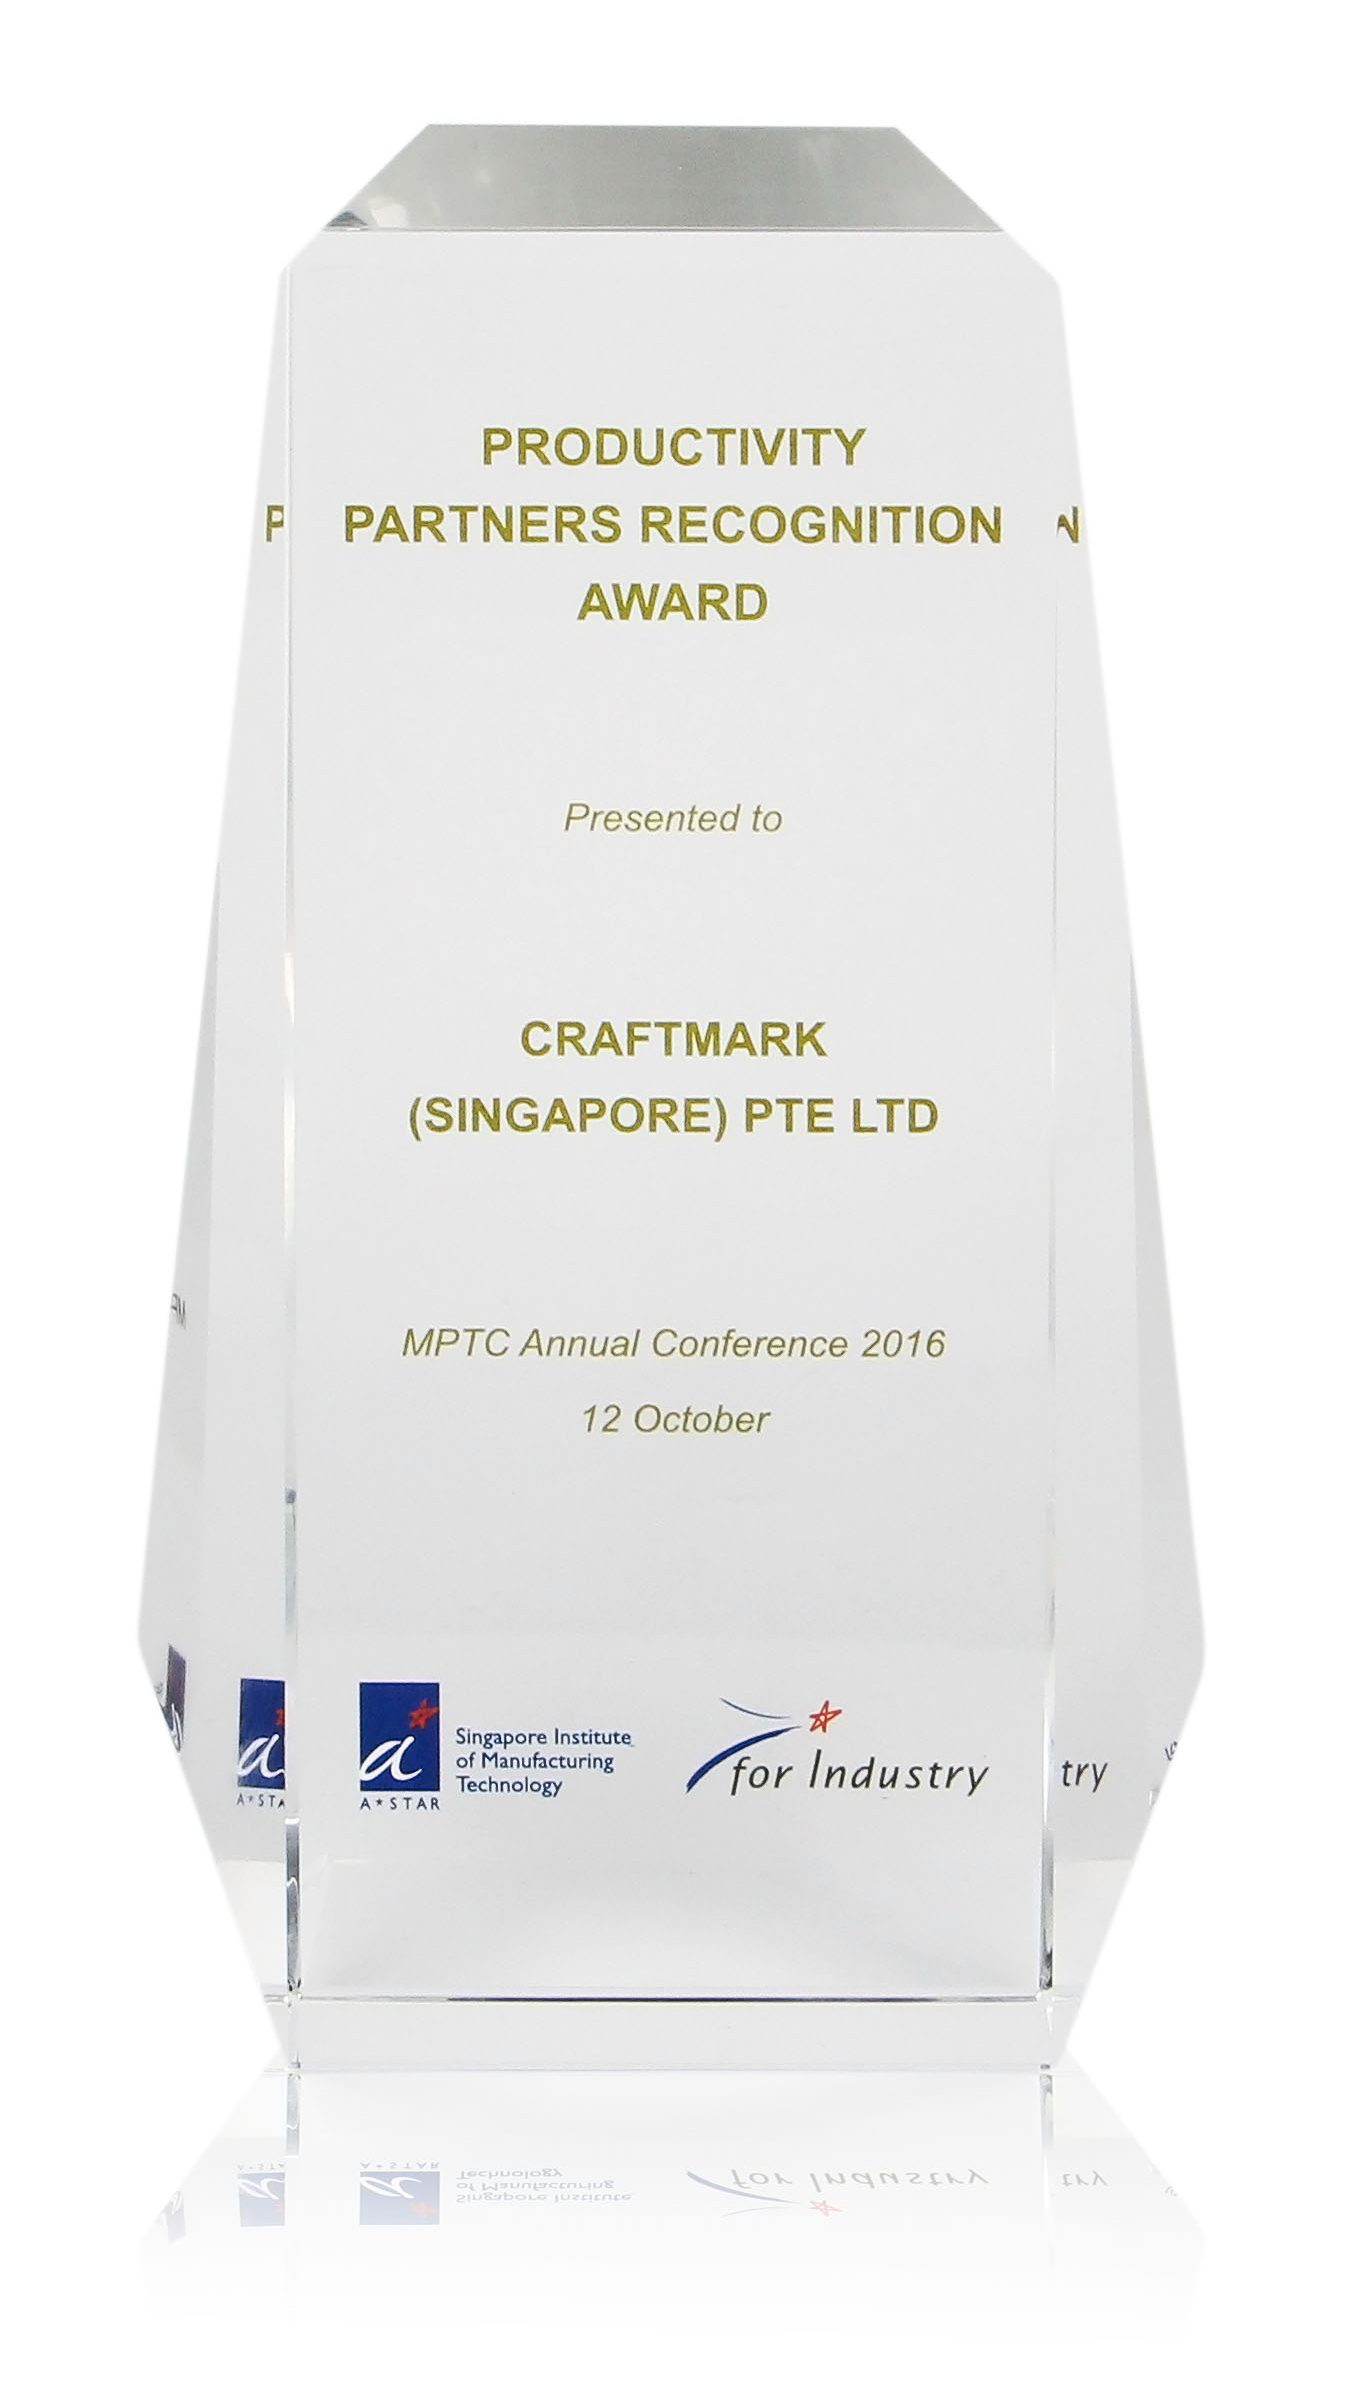 craftmark-productivity-partners-recognition-award-img_3231